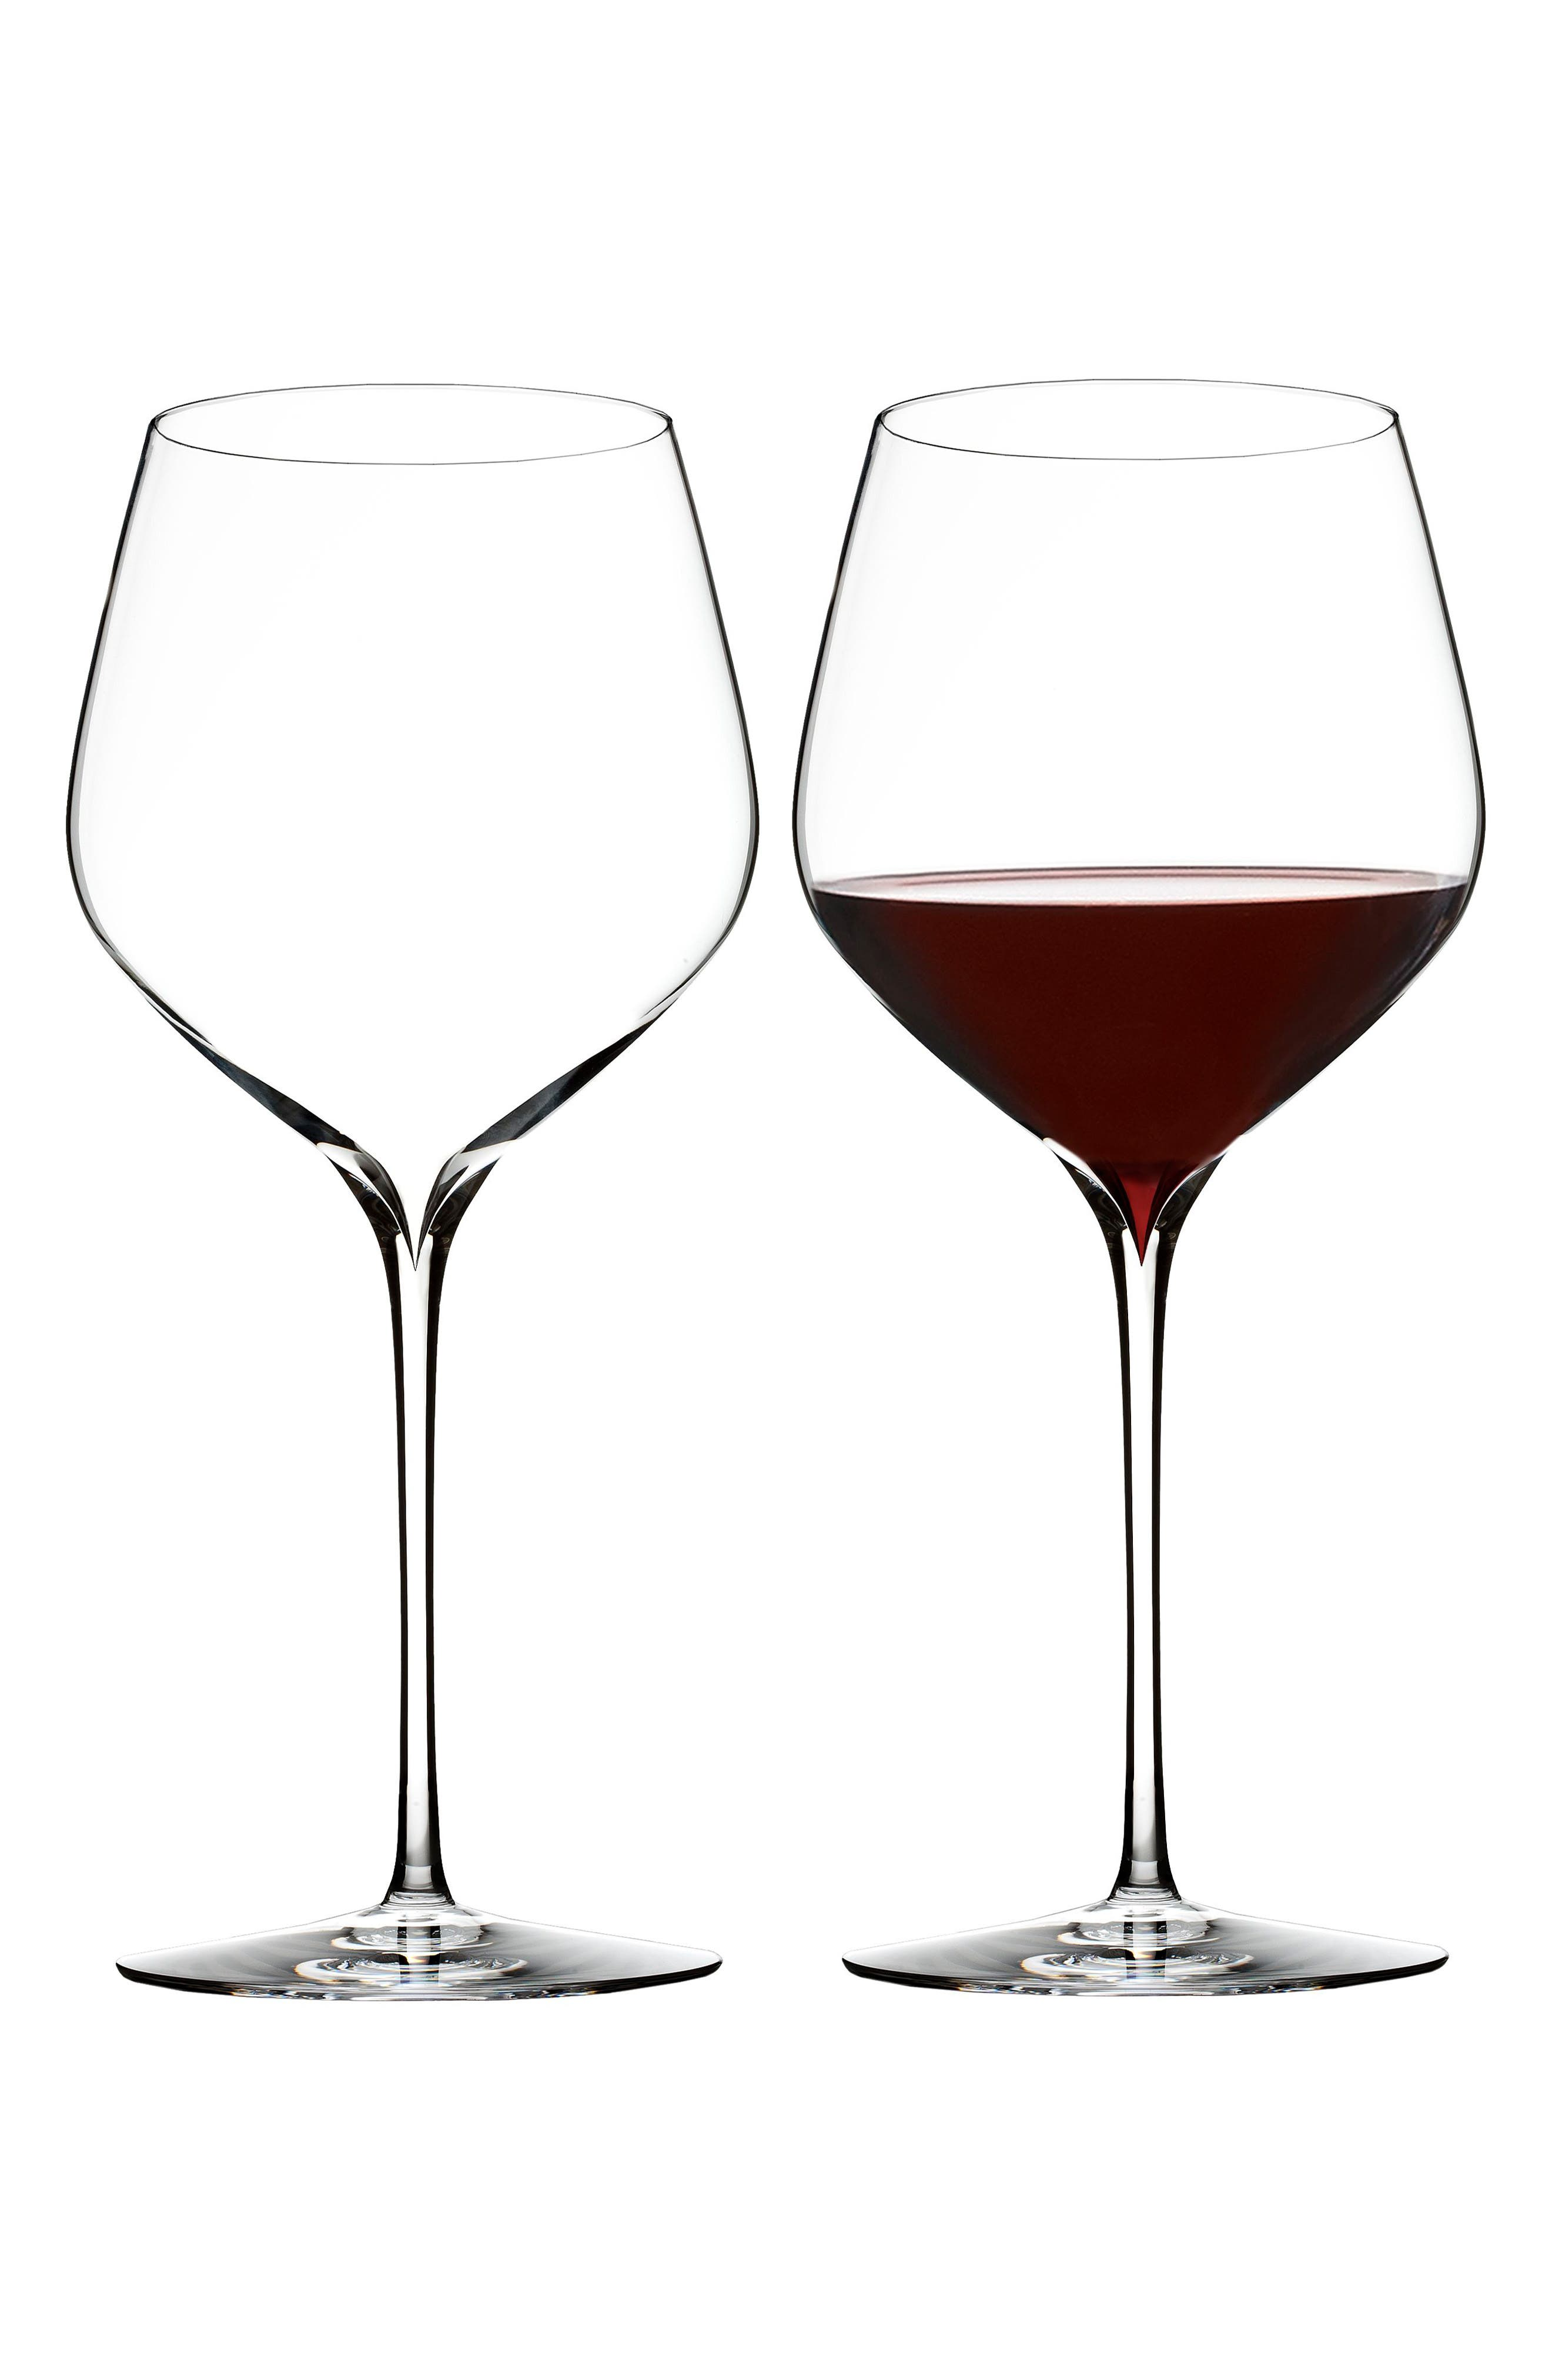 'Elegance' Fine Crystal Cabernet Sauvignon Glasses,                             Alternate thumbnail 3, color,                             100